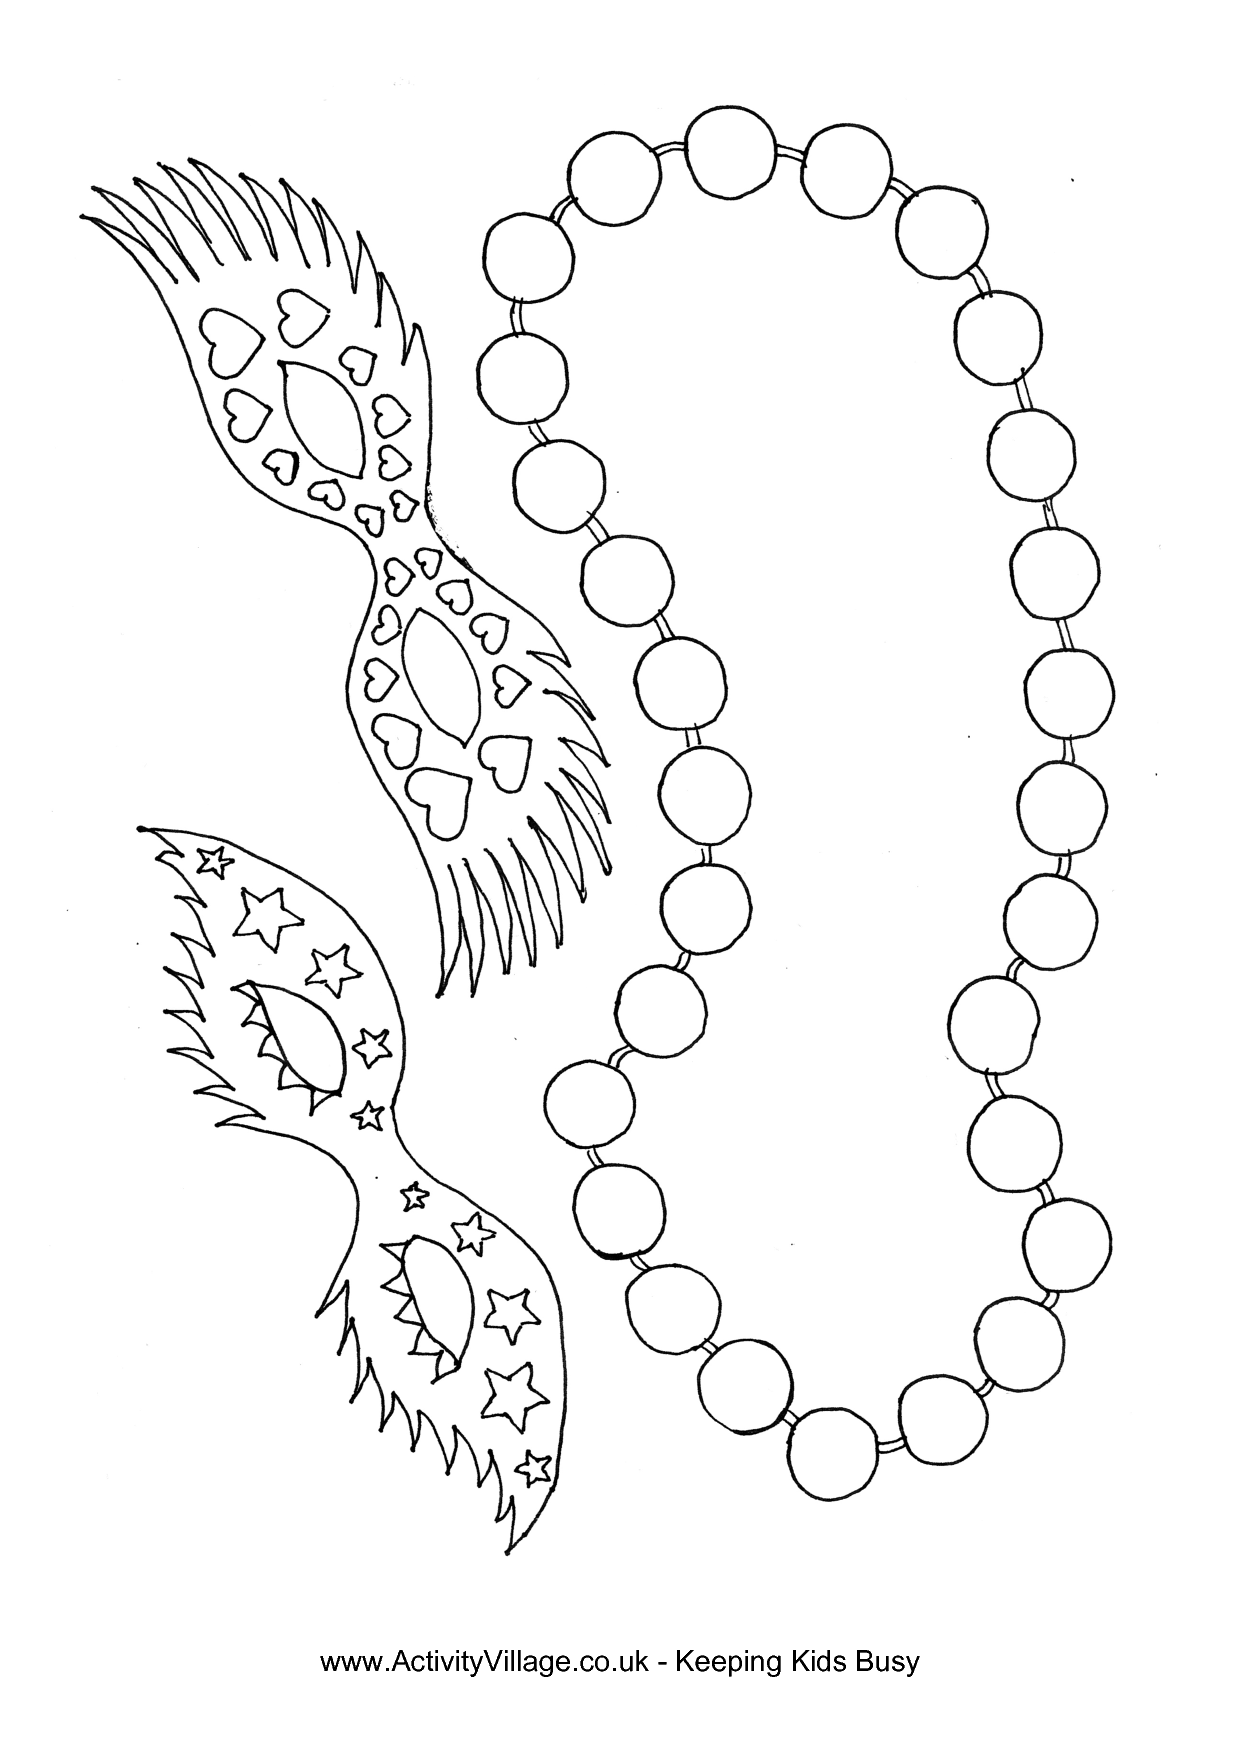 Mardi gras beads clipart coloring page. Pages of ninjazac gaming